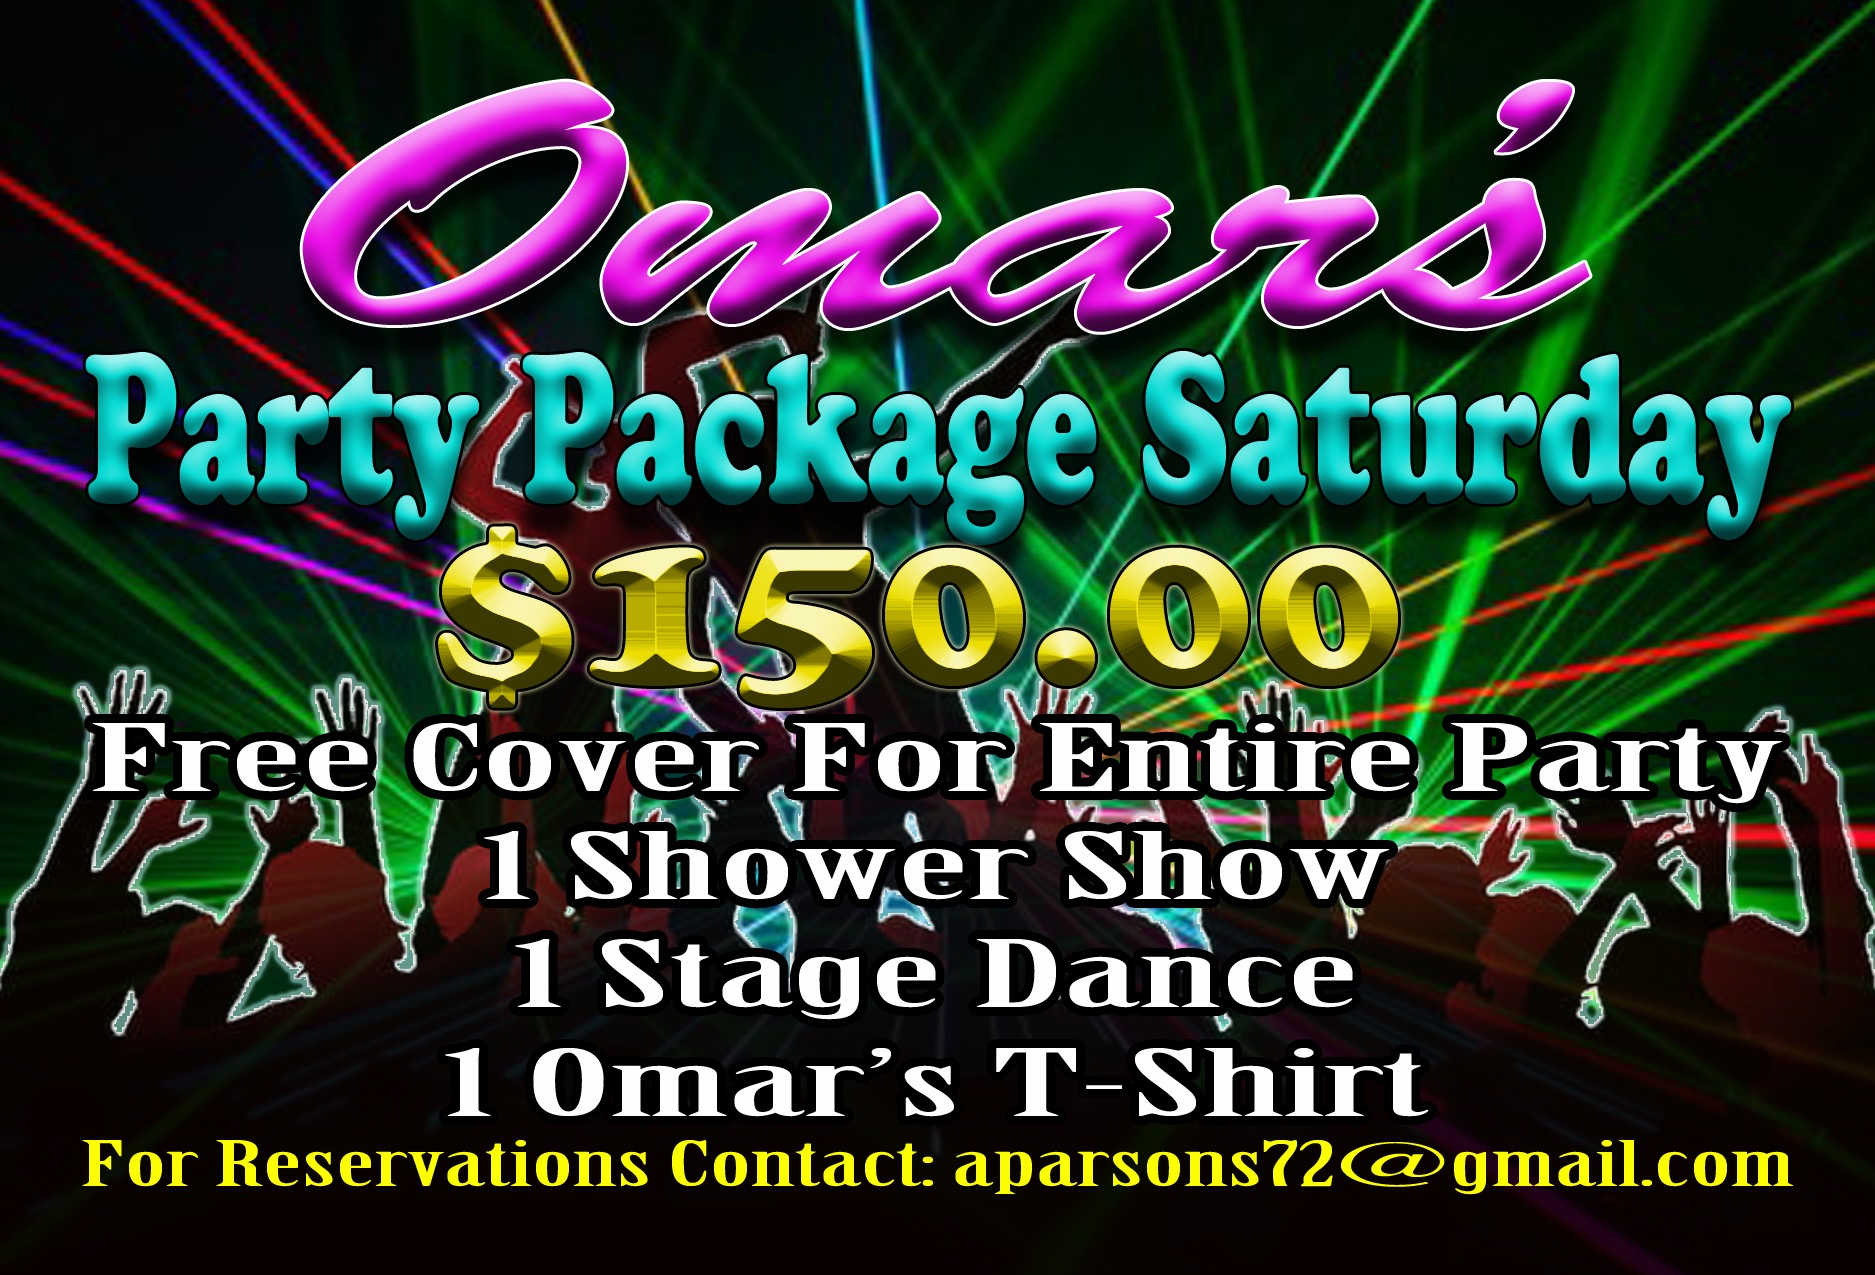 2021 Saturday Party Package